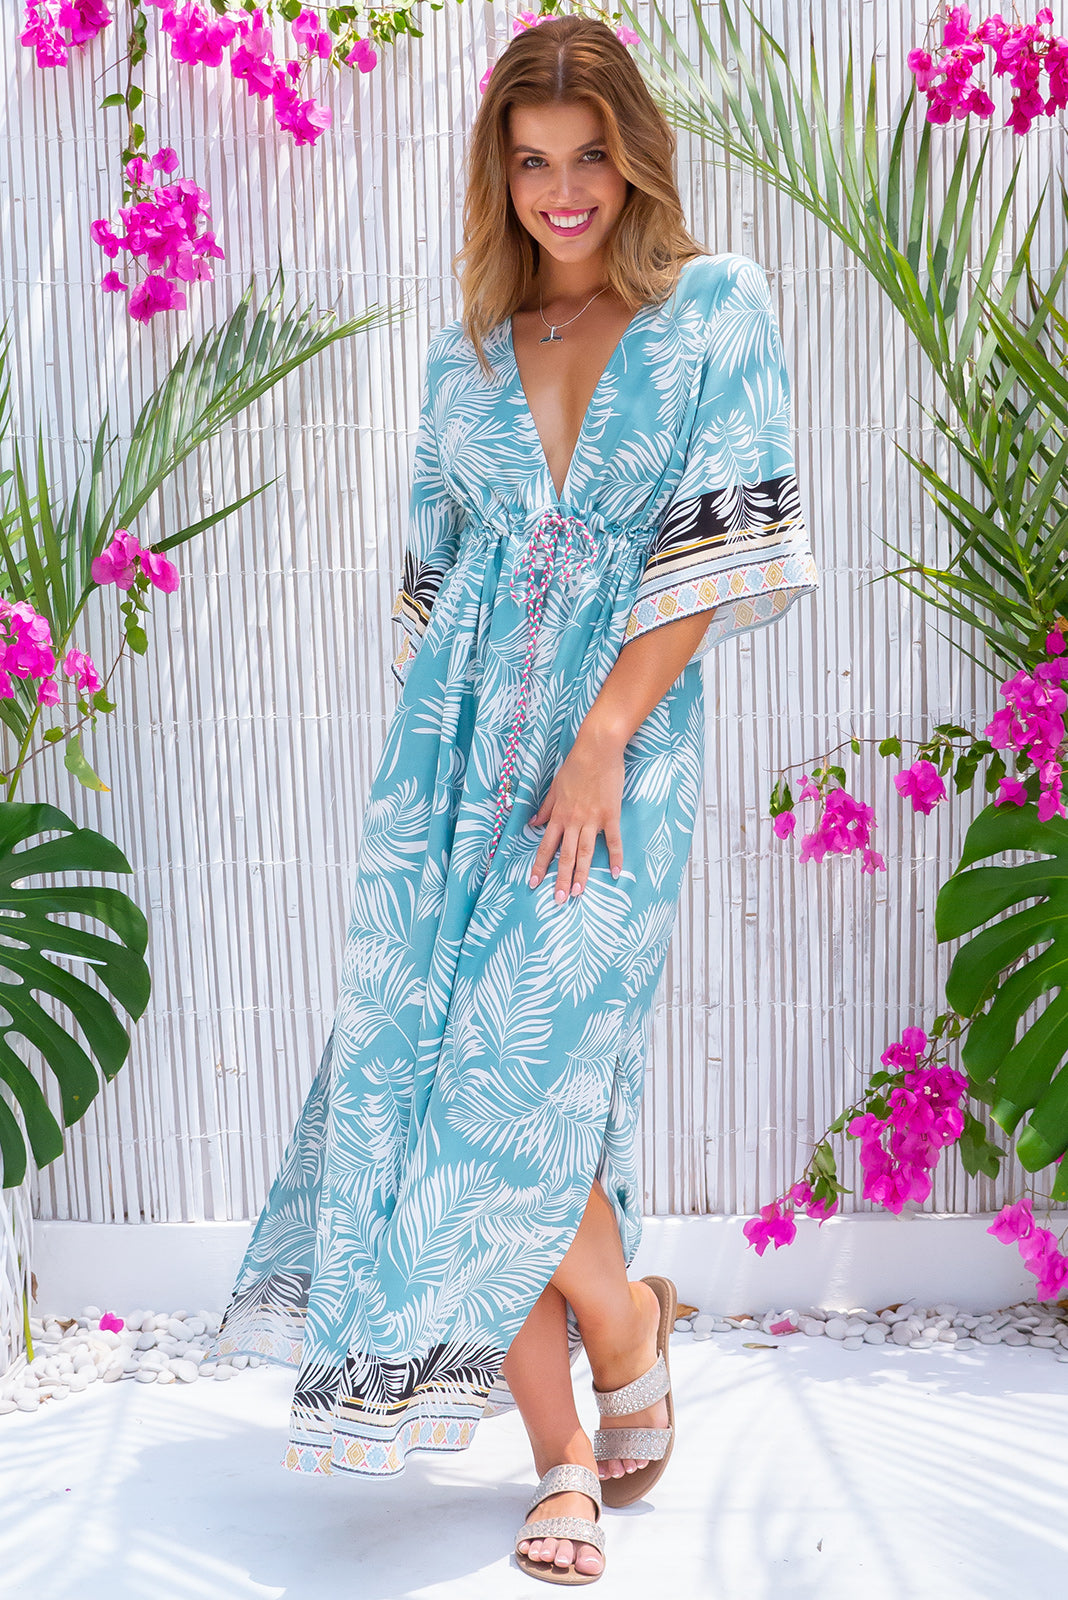 Annabella Palm Reading Caftan Maxi Dress, bohemian summer style, 100% rayon, adjustable drawstring waist, braided multicoloured drawstring with tassels and beading, deep v neckline, side pockets, sky blue base with large white palm print and complimentary multicoloured border print featuring white, black, sky blue, gold and fuchsia.